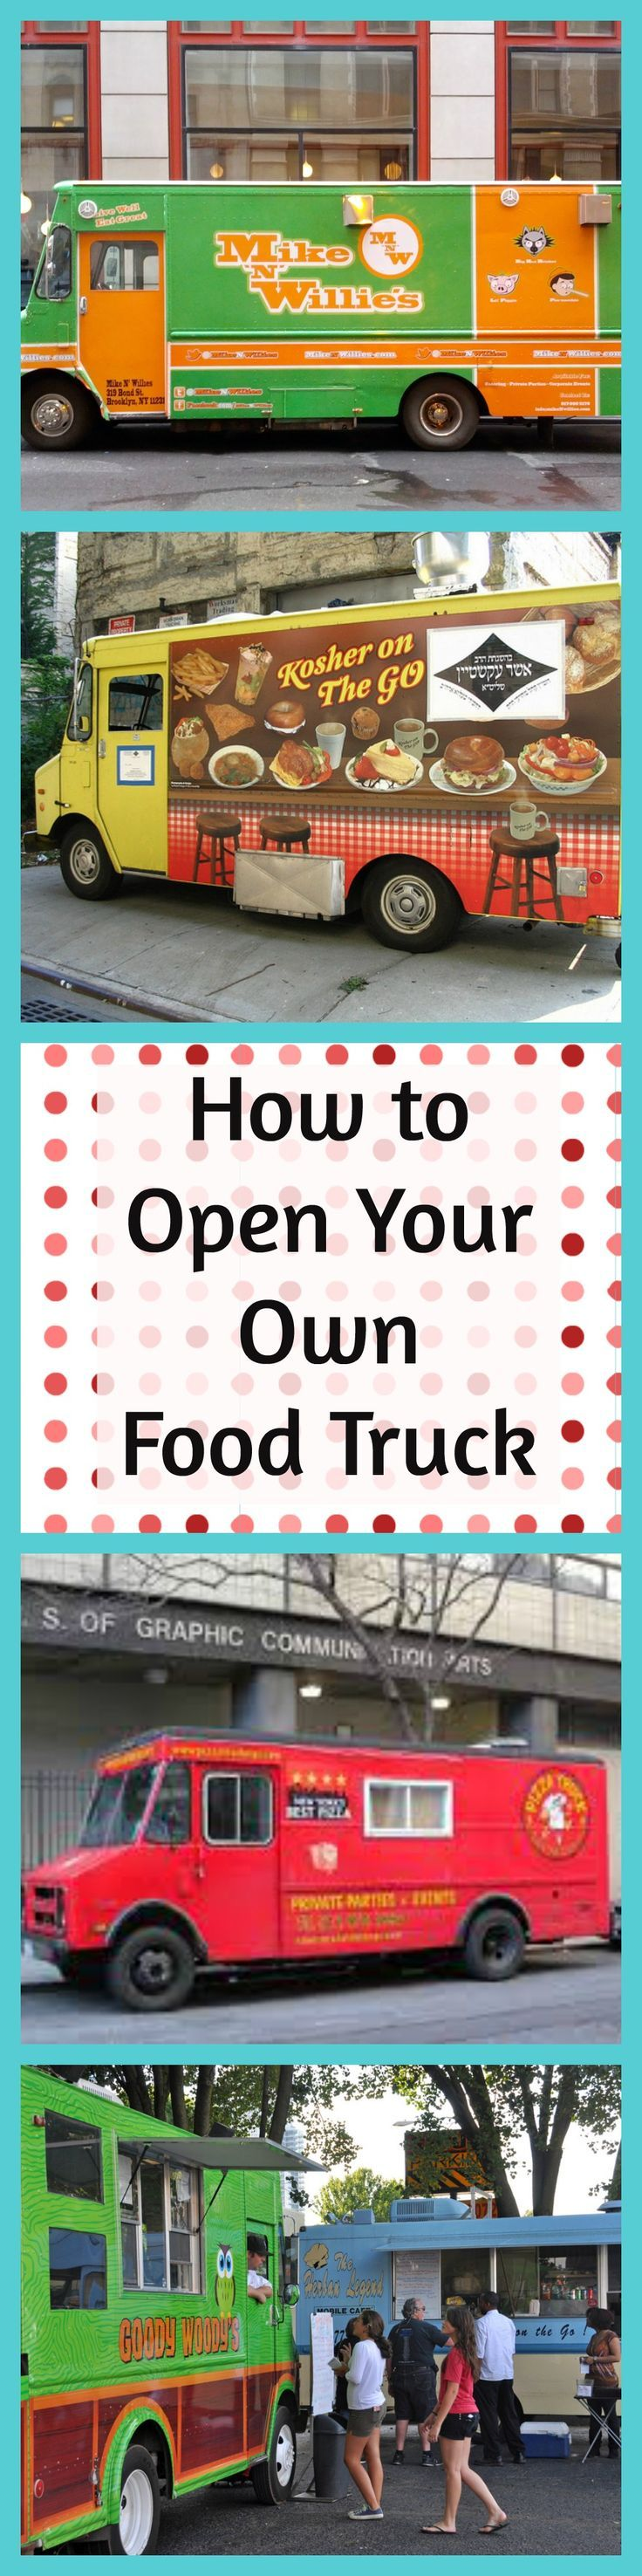 Food Inspiration Everything you need to know about opening your own food truck.